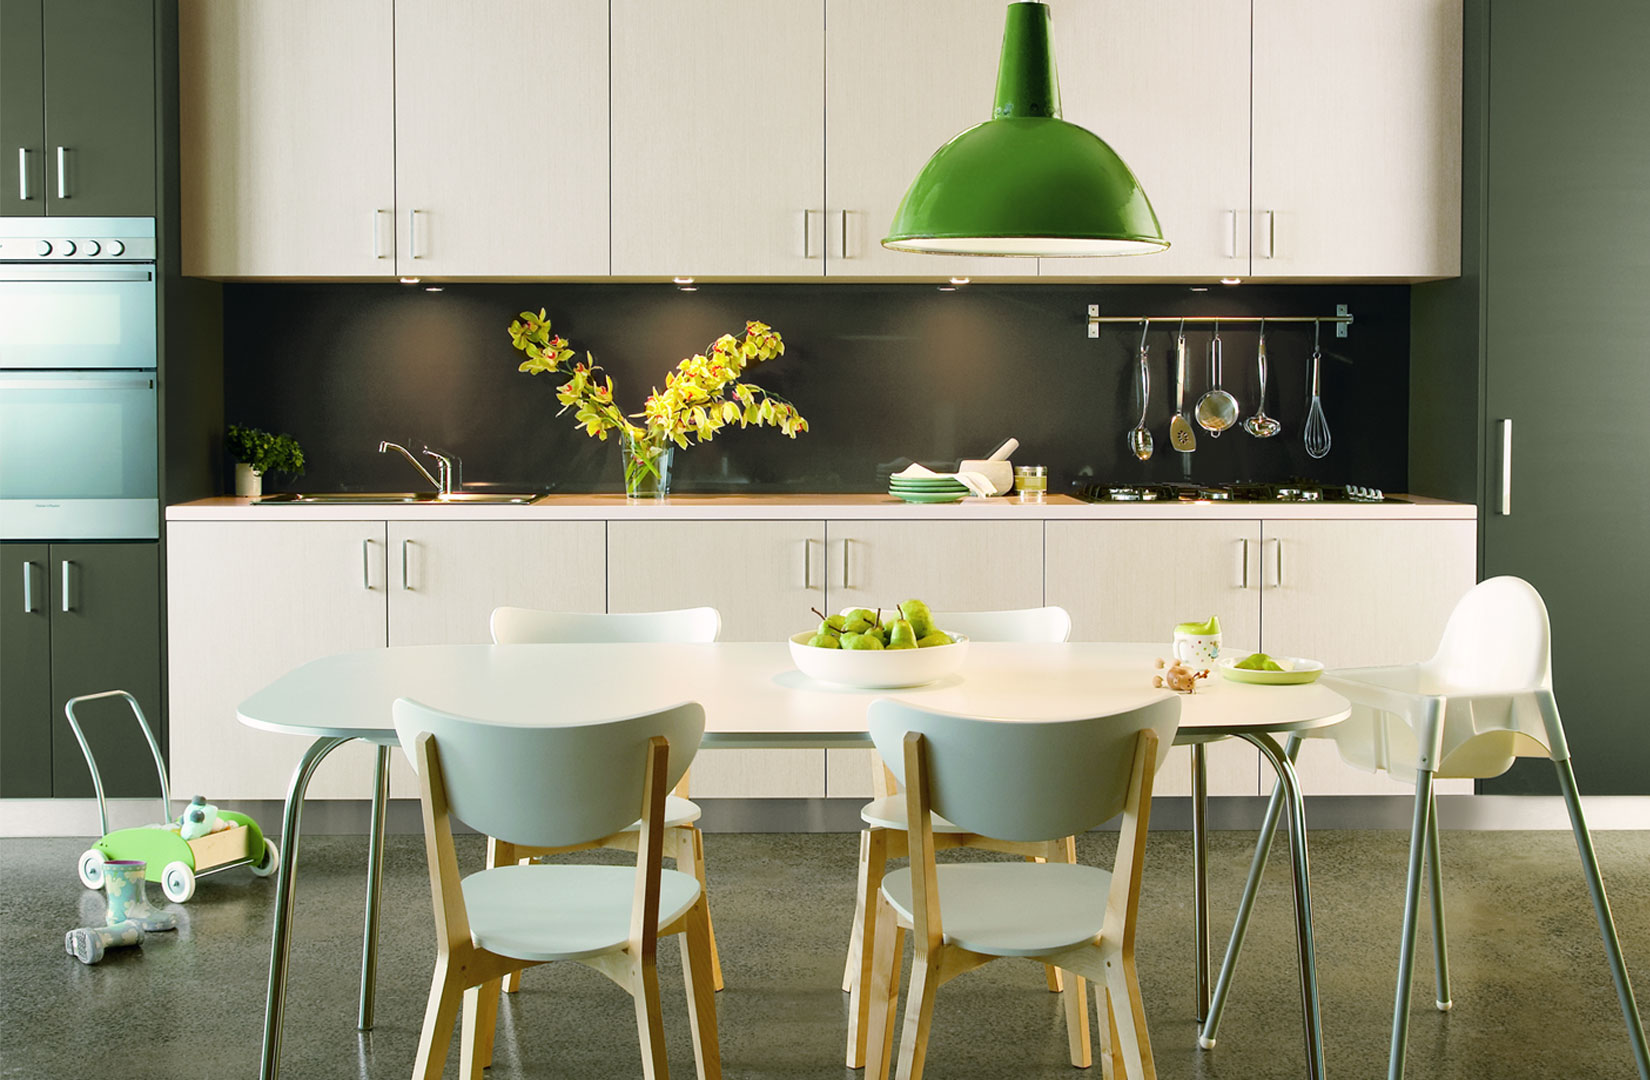 Laminex Kitchen Product In Focus Laminex Kate Walker Design Kwd